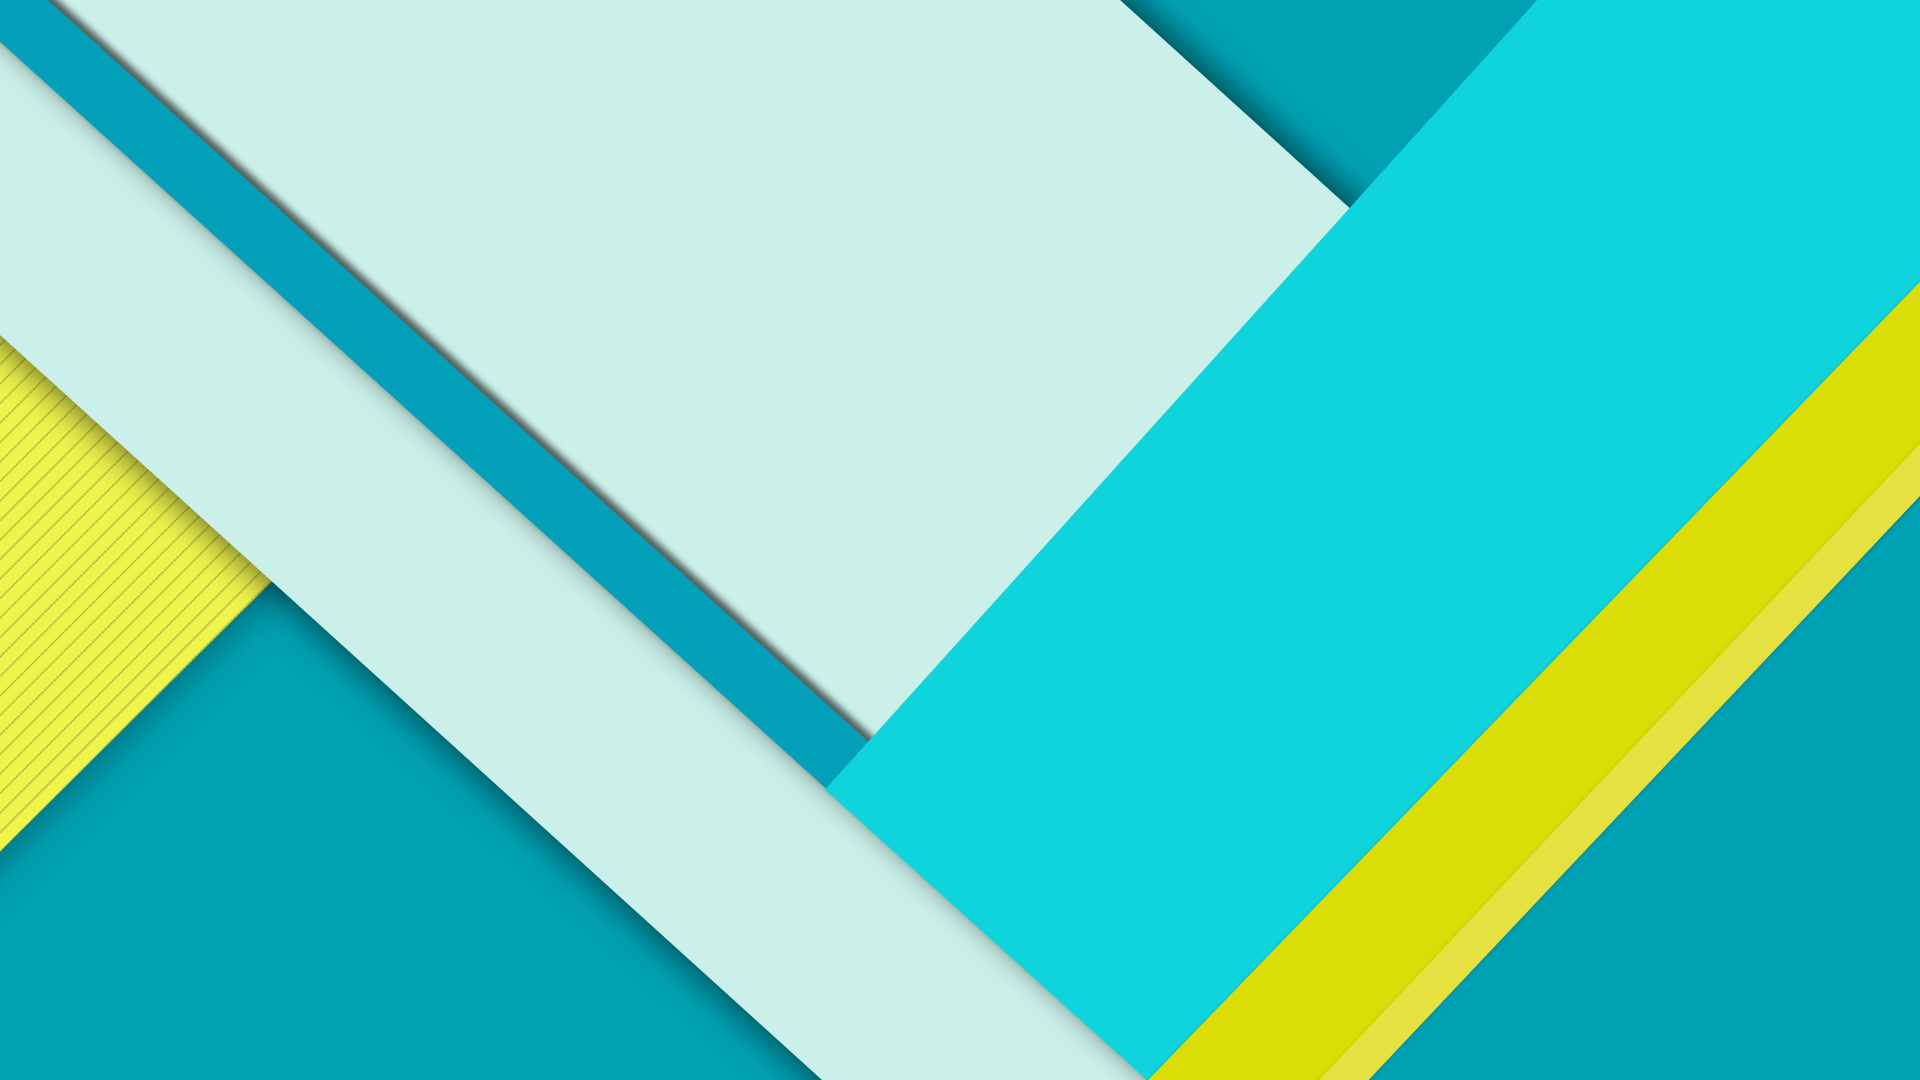 40 Best Material Design Wallpapers 4K (2016) HD Windows 7, 8 & 10